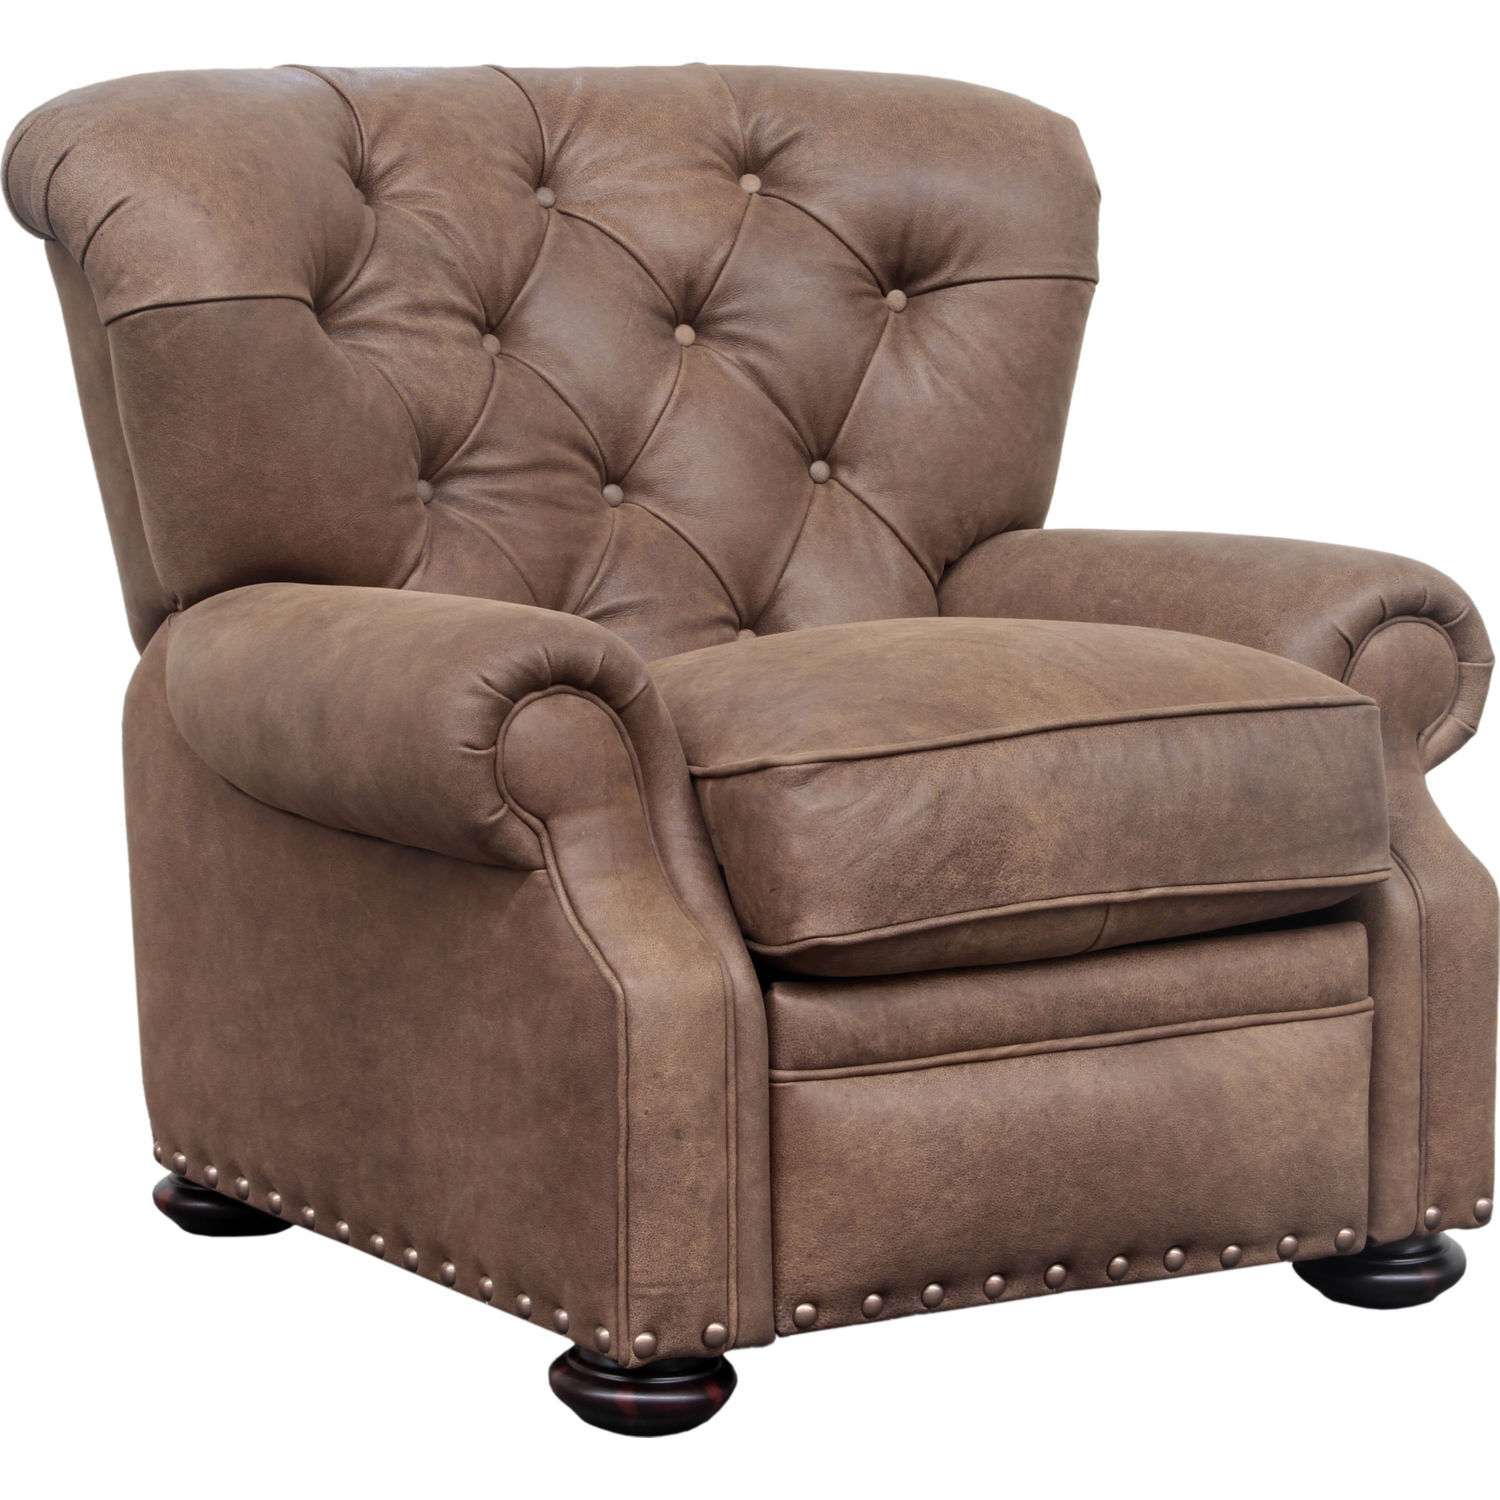 BarcaLounger Sinclair Recliner in Sanded Dark Bomber